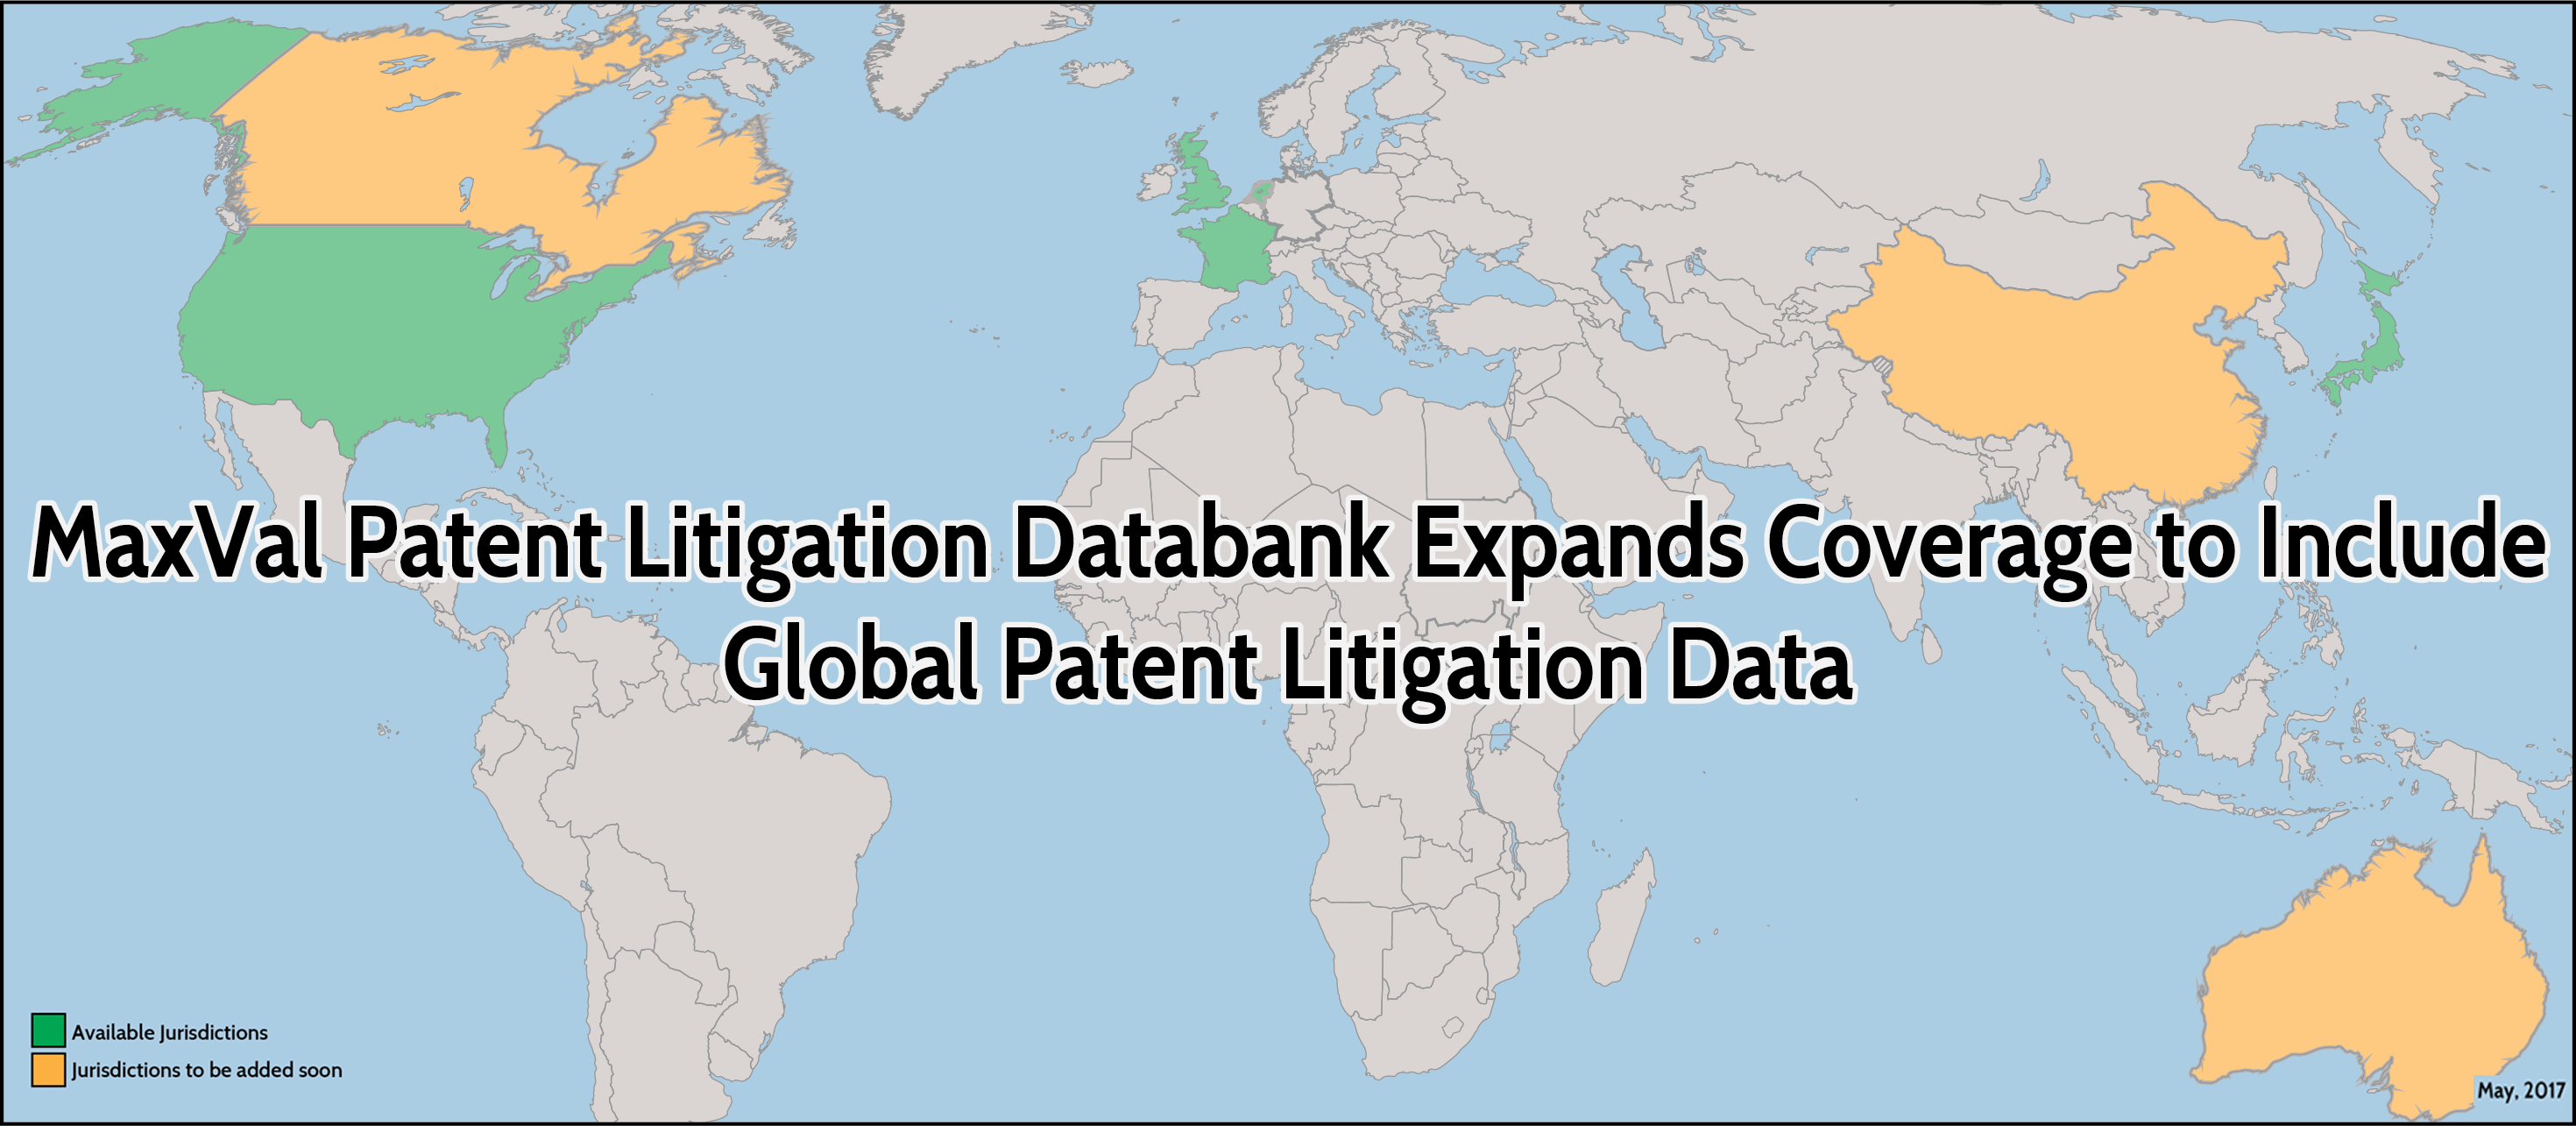 MaxVal Patent Litigation Databank expands coverage to include Global Patent Litigation Data